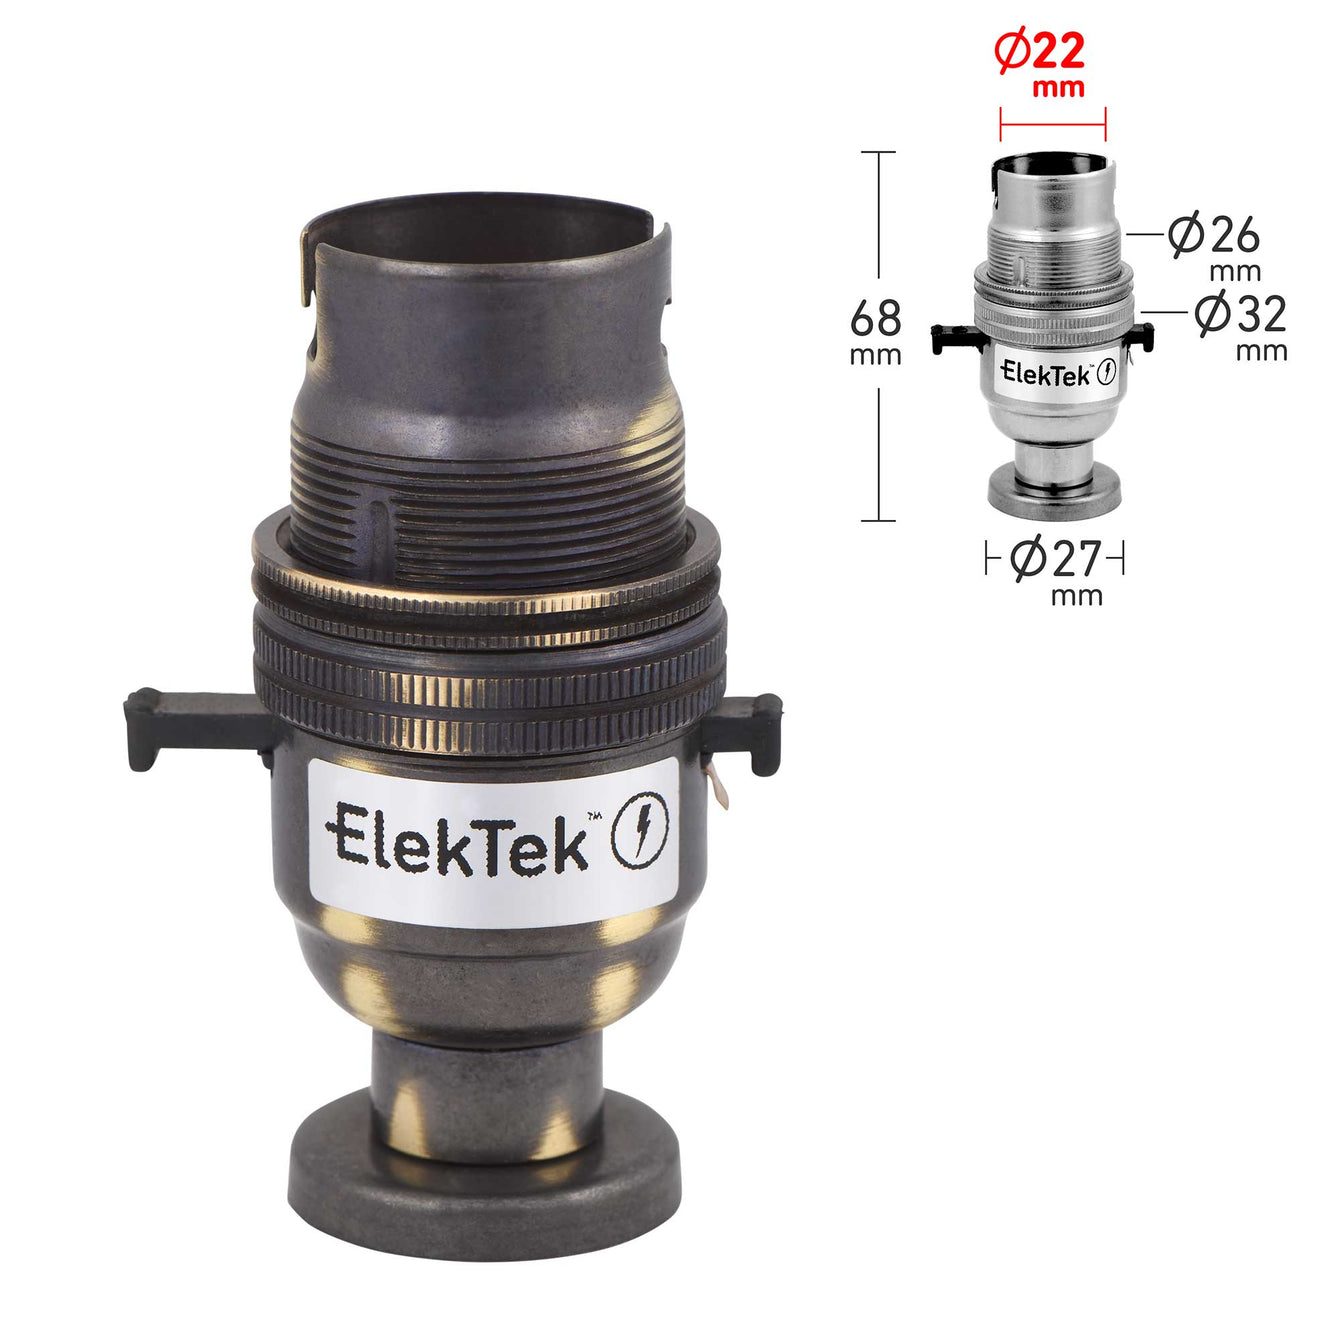 ElekTek Safety Switch Lamp Holder Half Inch Bayonet Cap B22 With Shade Ring Back Plate Cover and Screws Brass